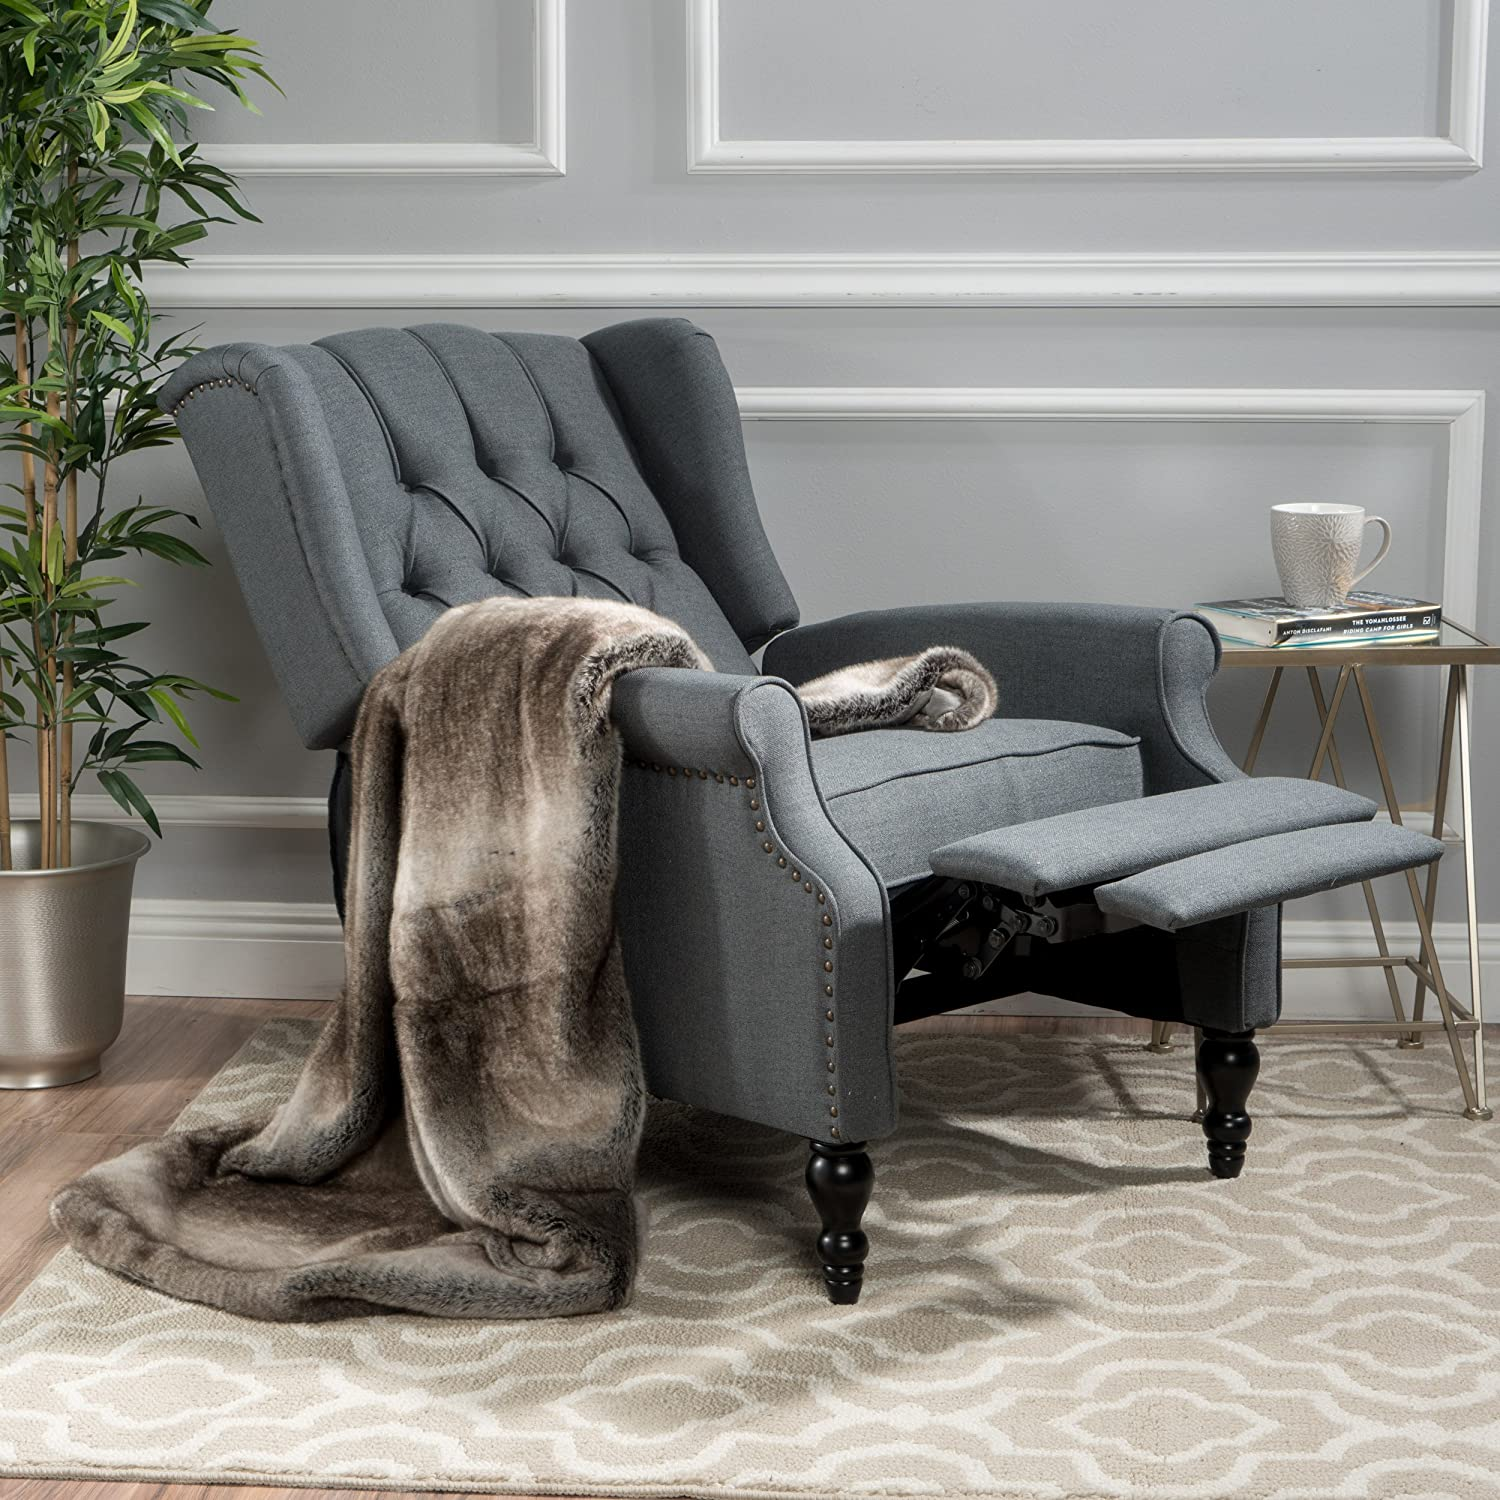 Christopher Knight Home Walter Fabric Recliner, Charcoal